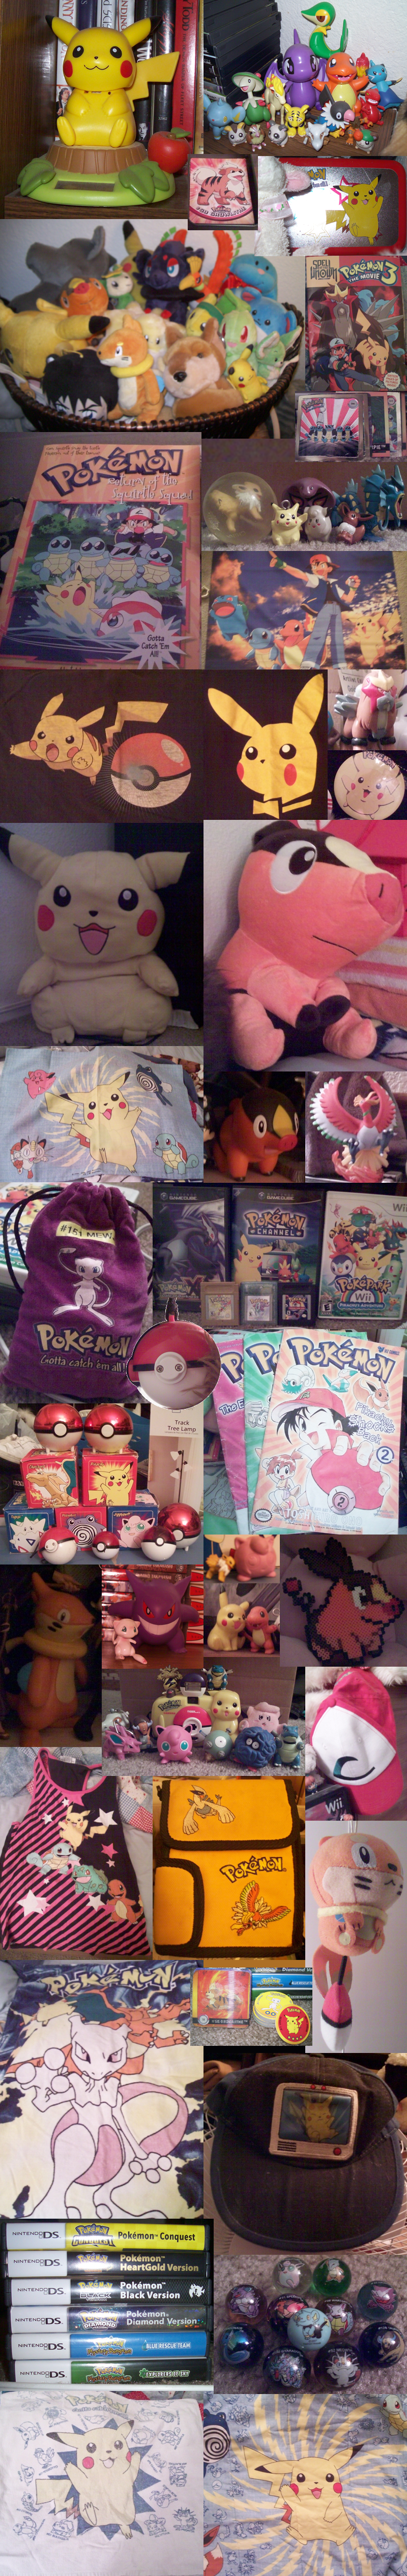 (Most of) My Pokemon Collection by Miiroku